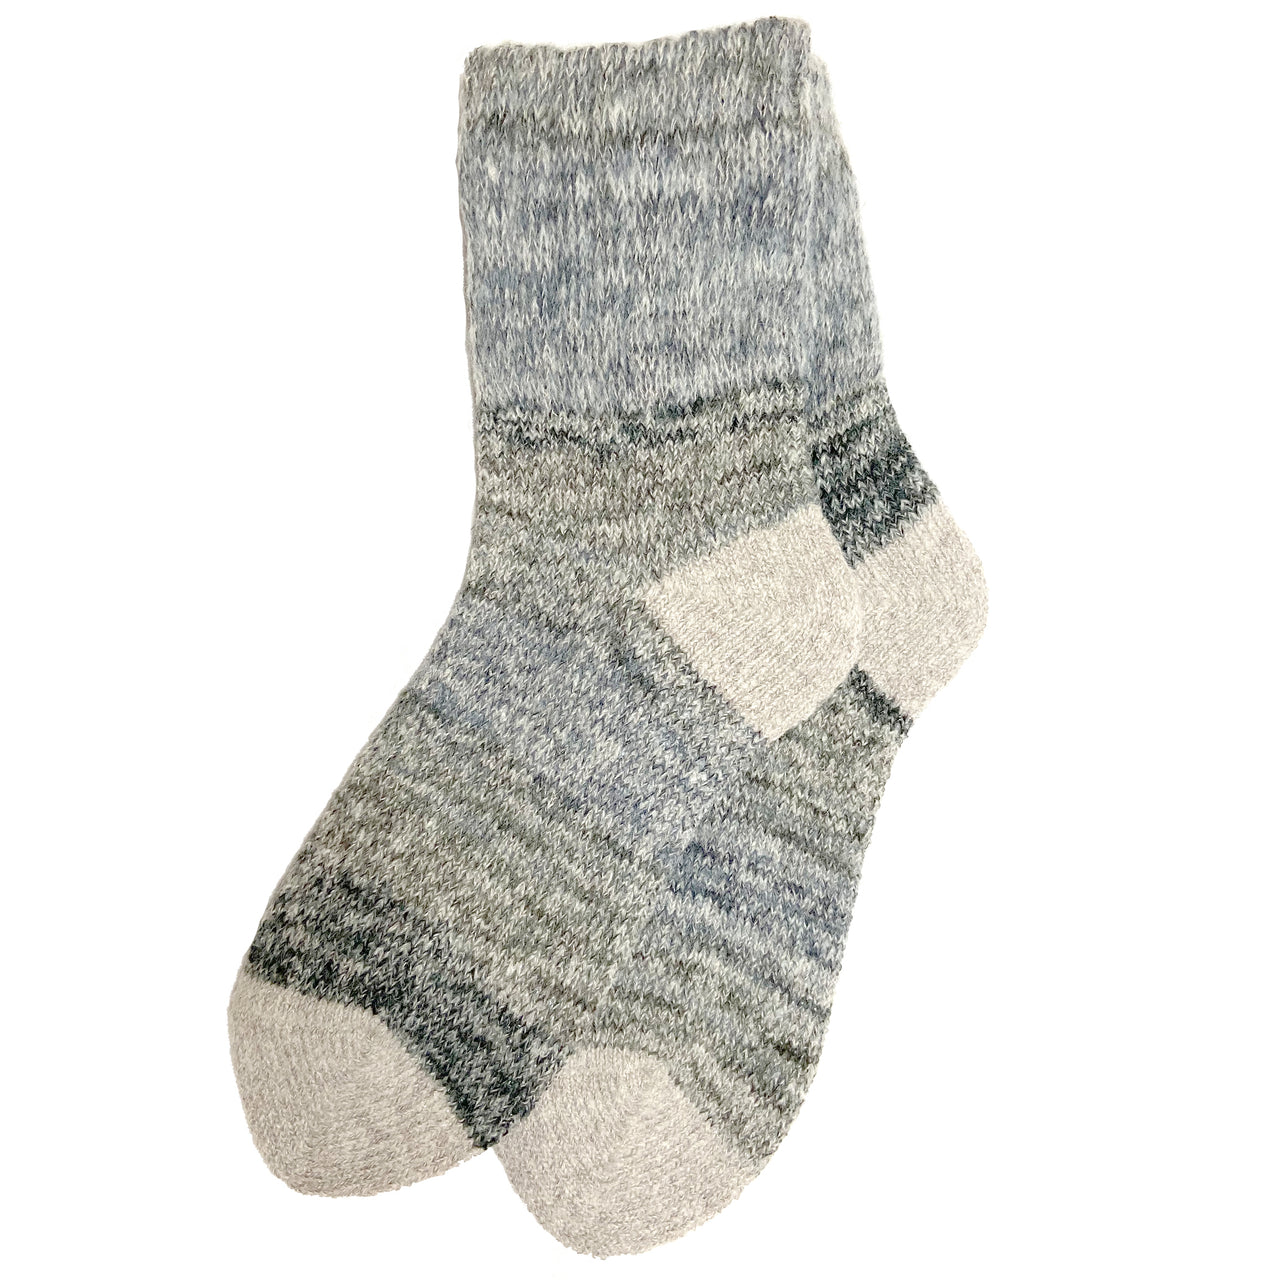 Wool Blend Gradation Crew Sock | With Grips | Size Large | Gray - CHERRYSTONE